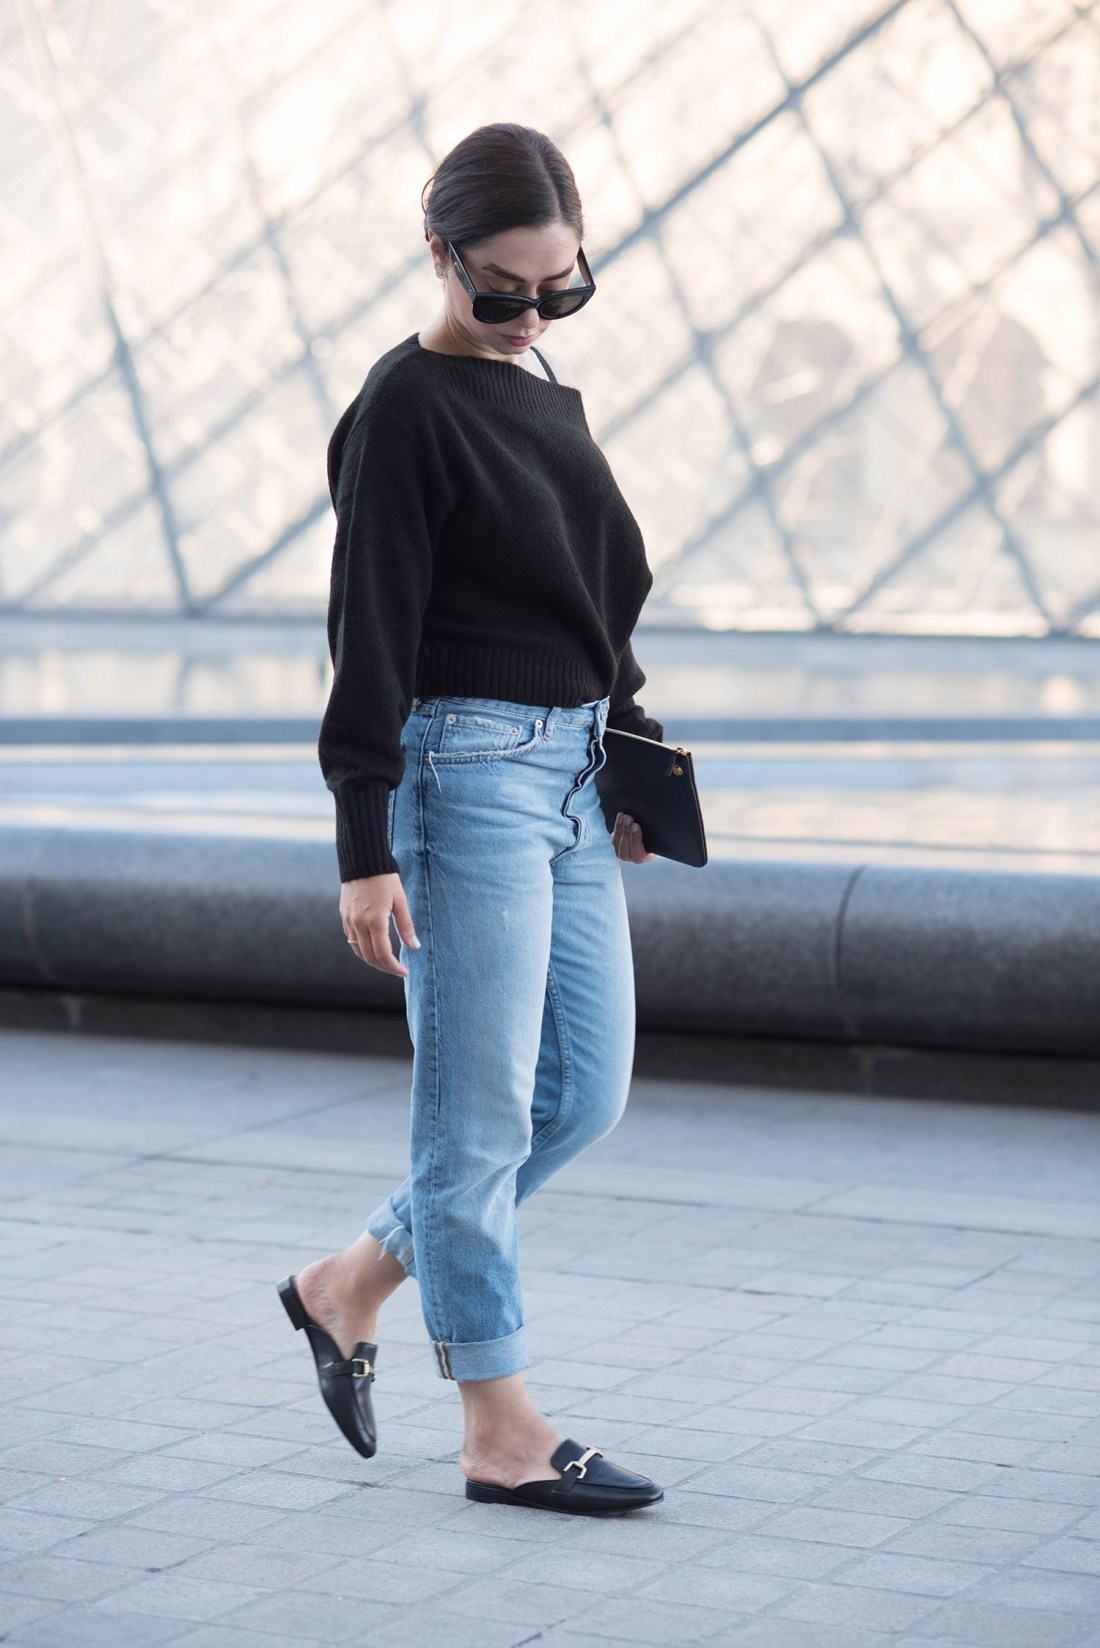 Fashion blogger Cee Fardoe of Coco & Vera stands outside the Louvre in Paris wearing Jonak mules and Zara boyfriend jeans